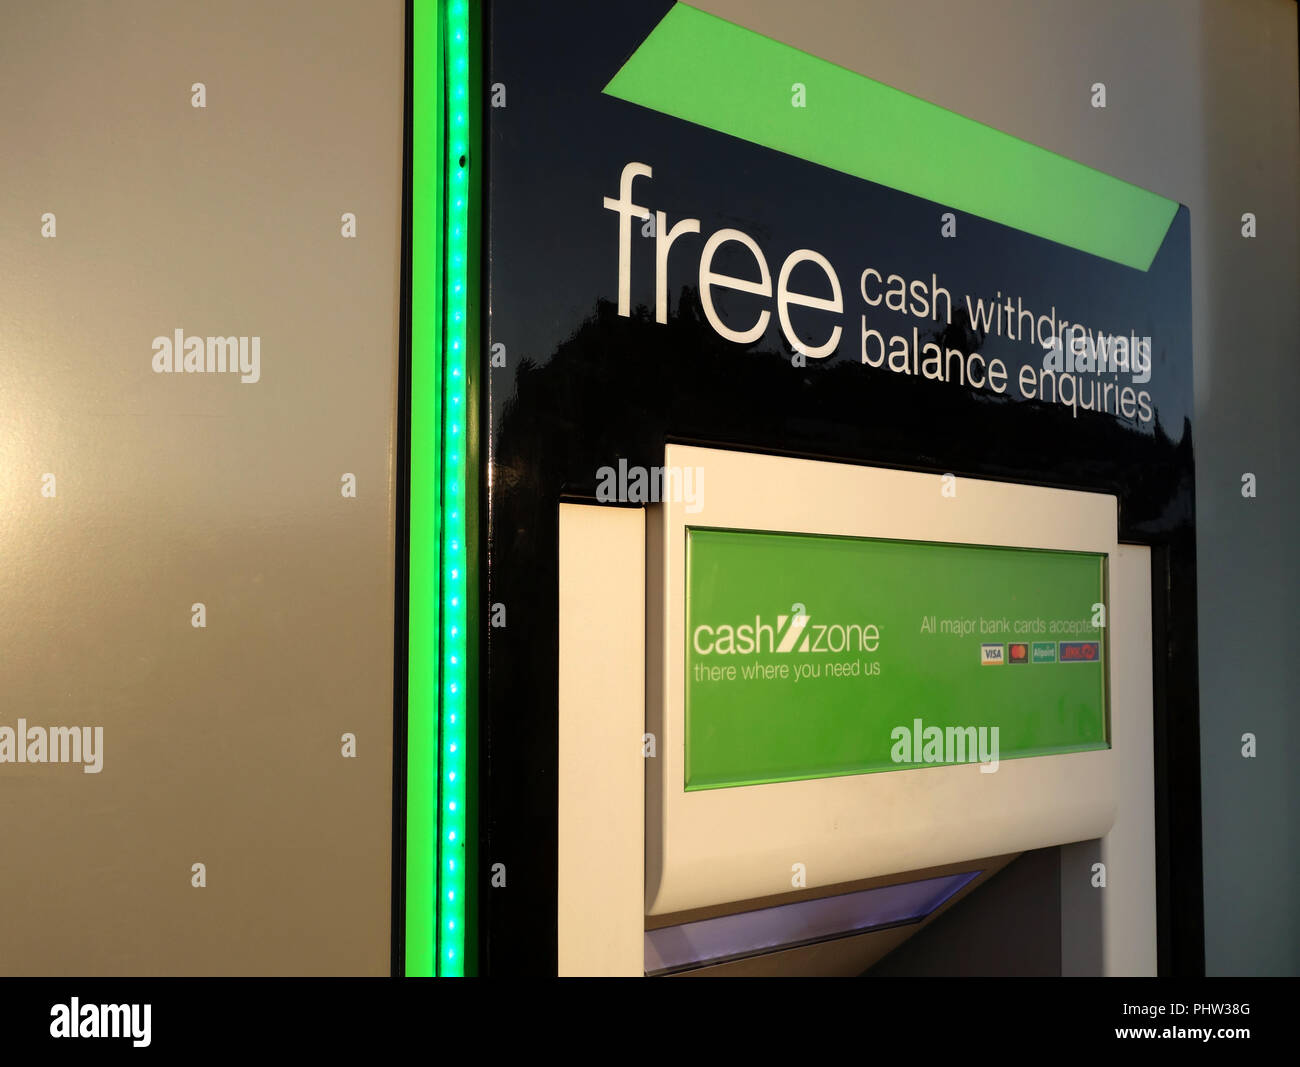 New Free Cash Zone ATM Cashpoint in the village of Thurcroft, Rotherham. - Stock Image